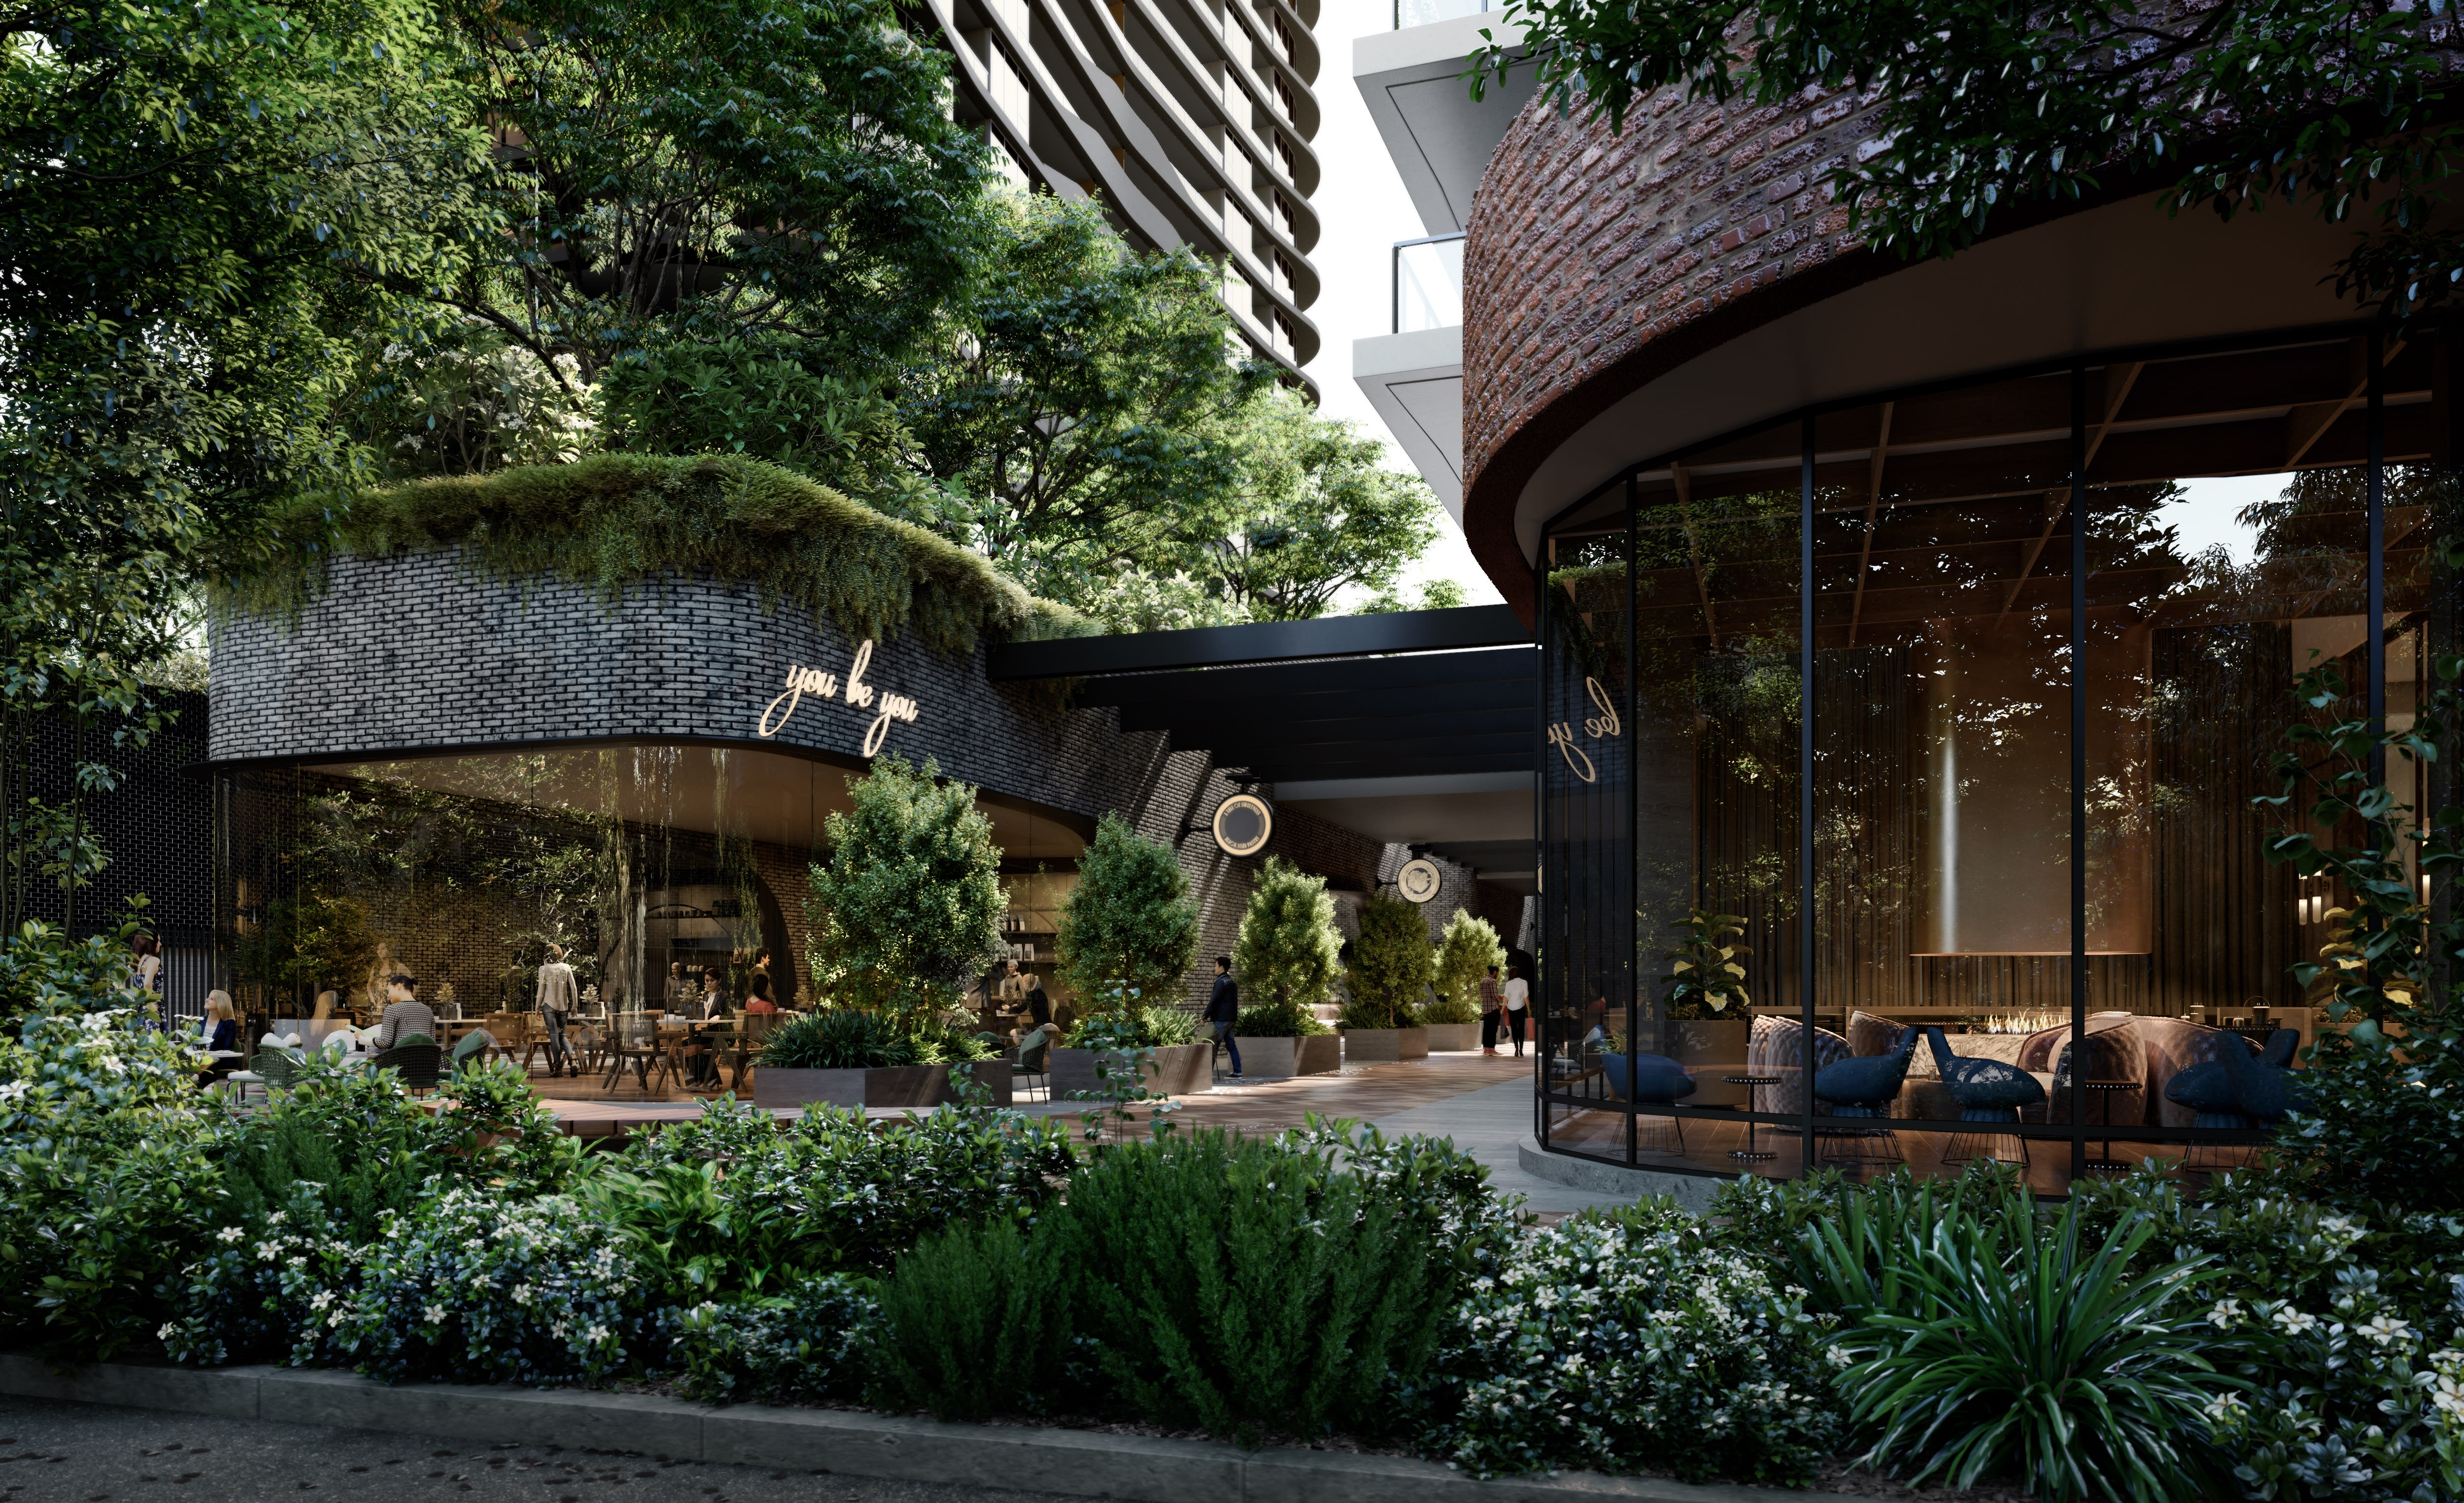 5 Sydney apartments with on-site retail and dining facilities